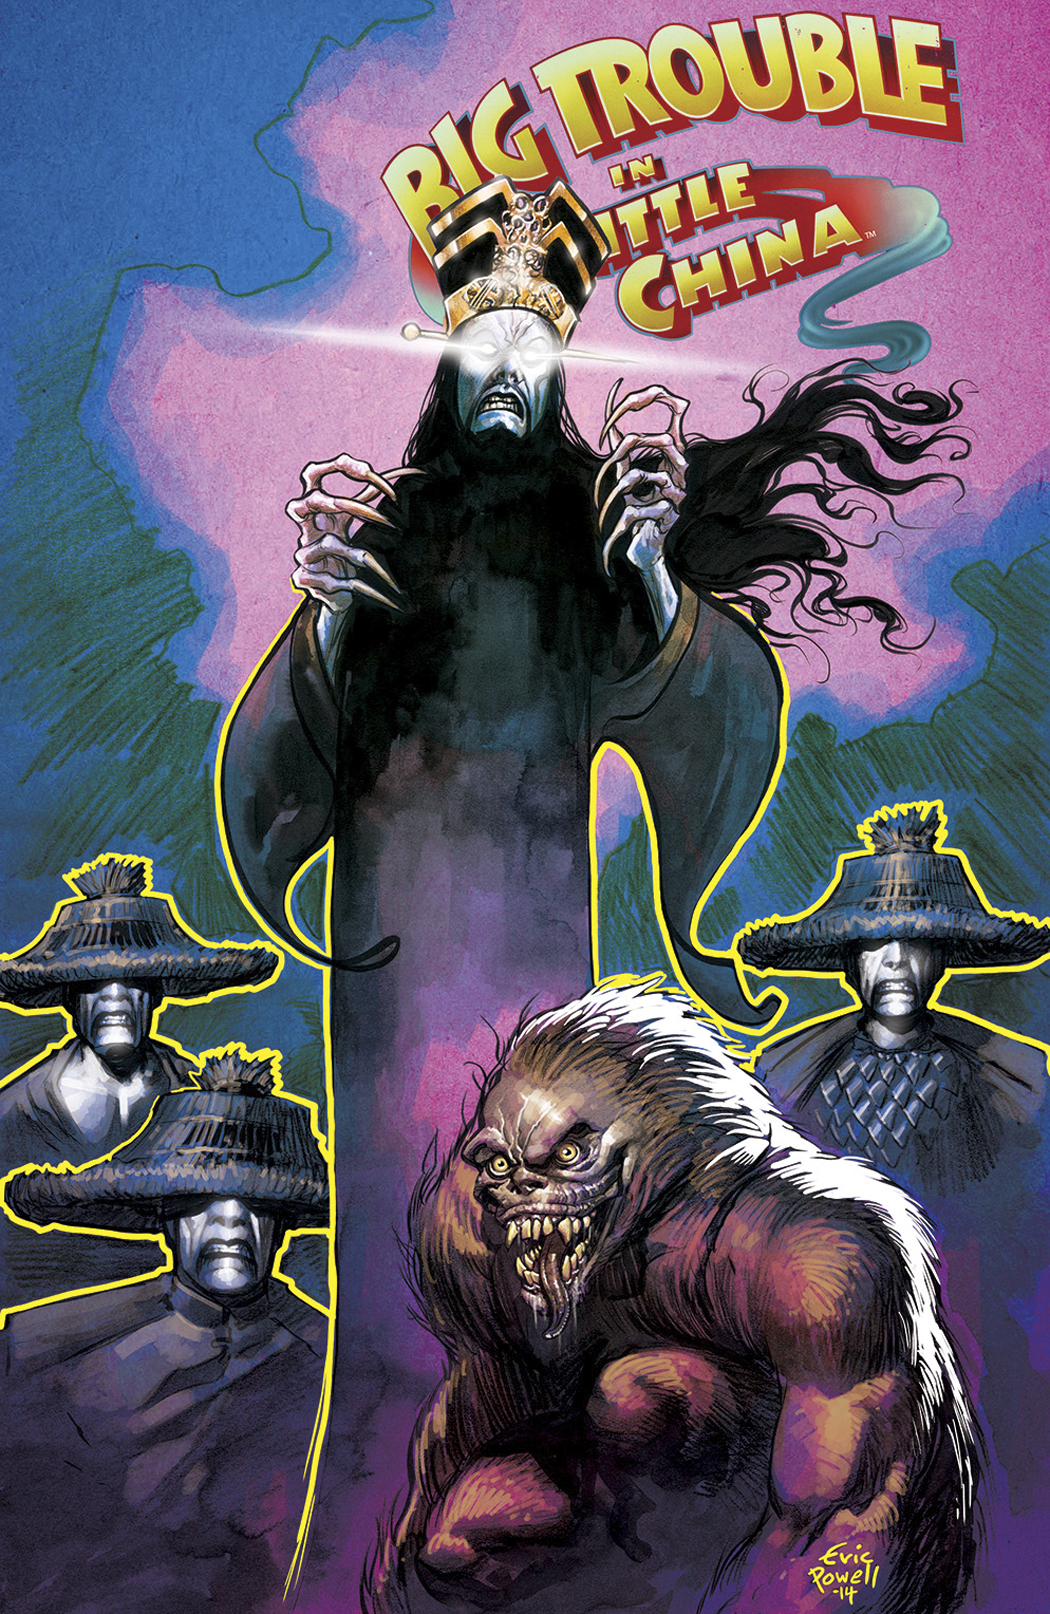 BIG TROUBLE IN LITTLE CHINA #5 MAIN CVRS